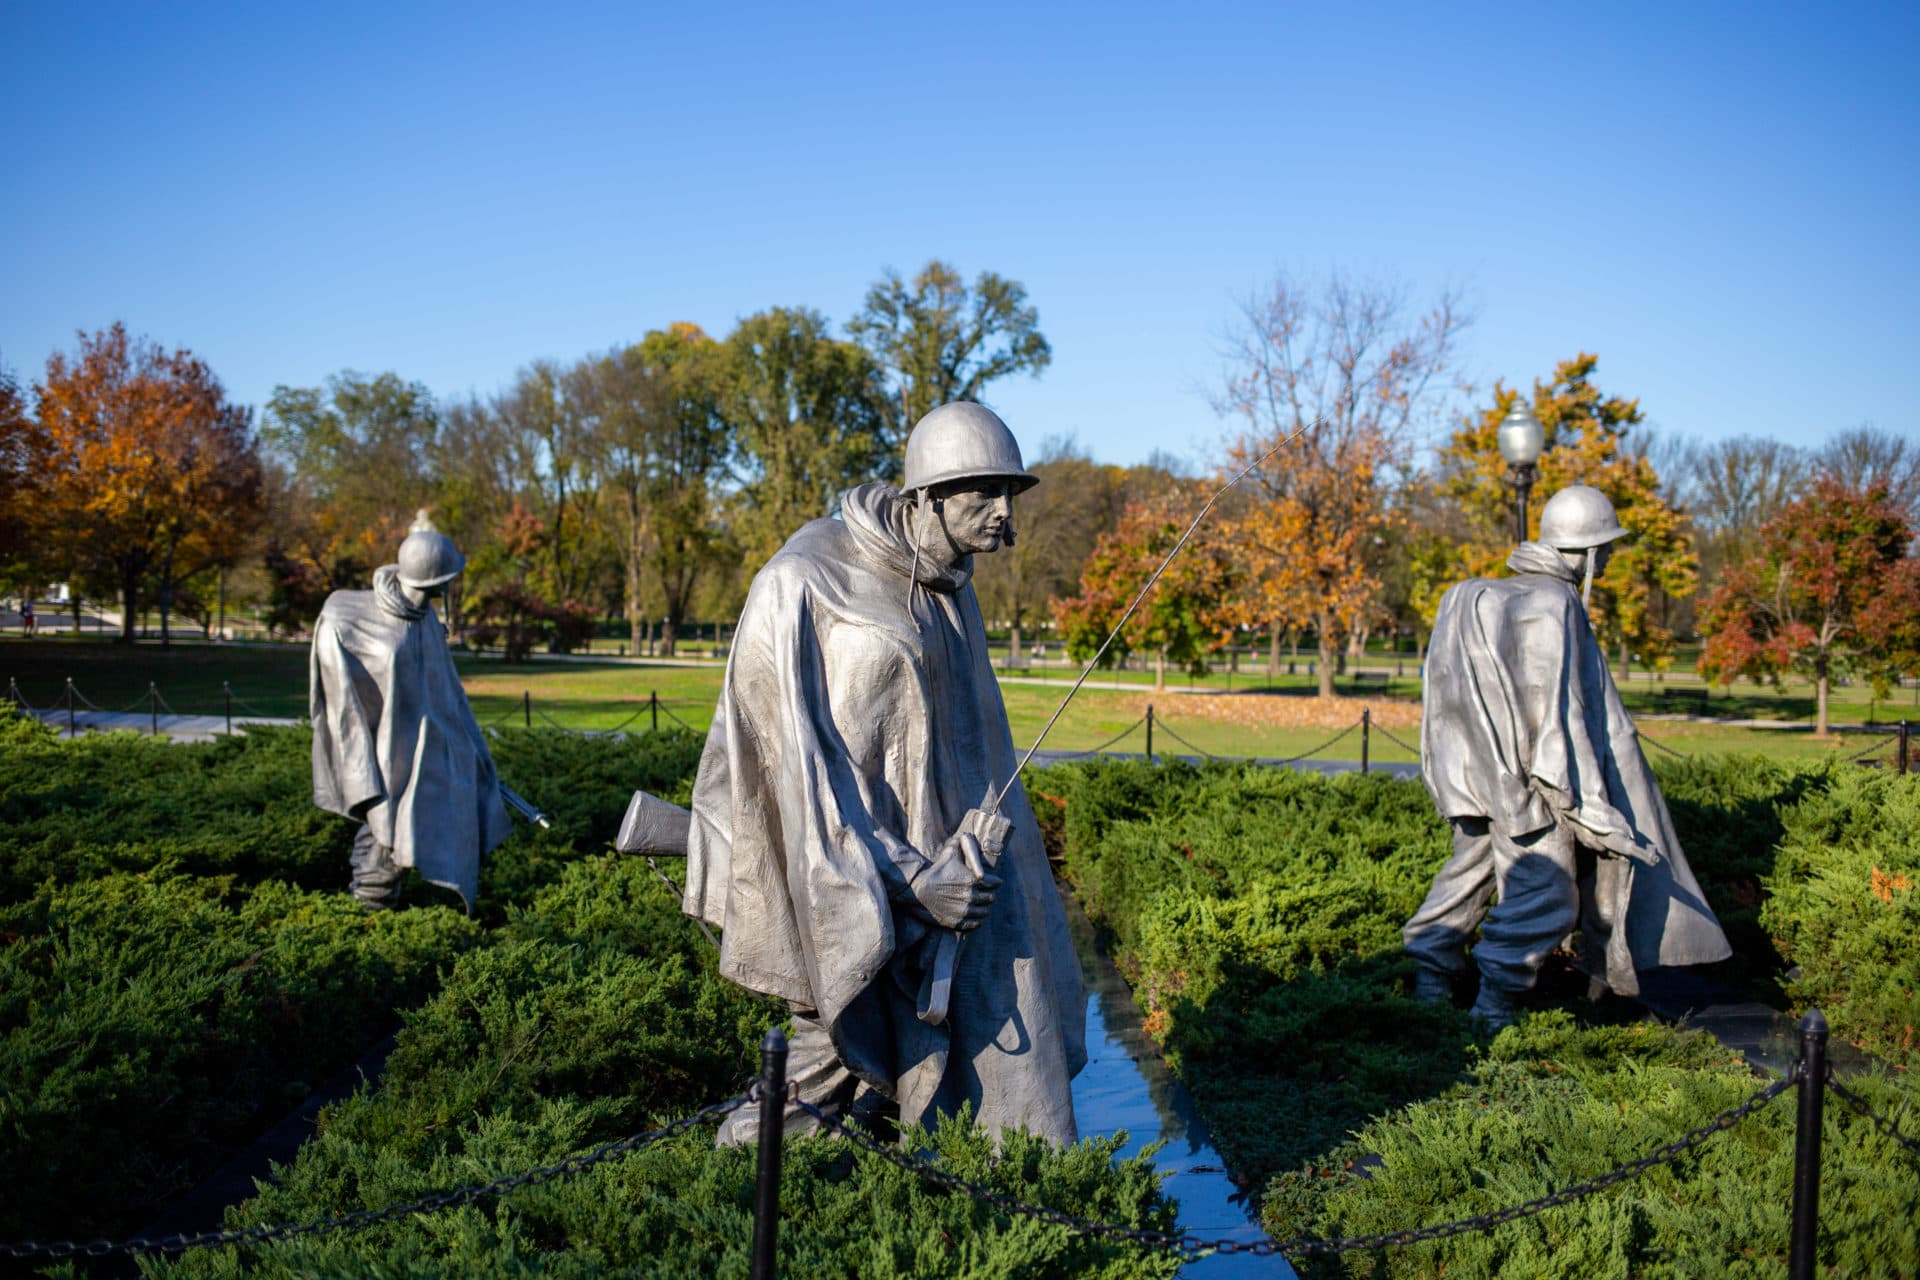 Located near the Lincoln Memorial, the Korean War Veterans Memorial was dedicated in 1995 and features a Wall of Remembrance and 19 stainless steel statues depicting soldiers in combat.